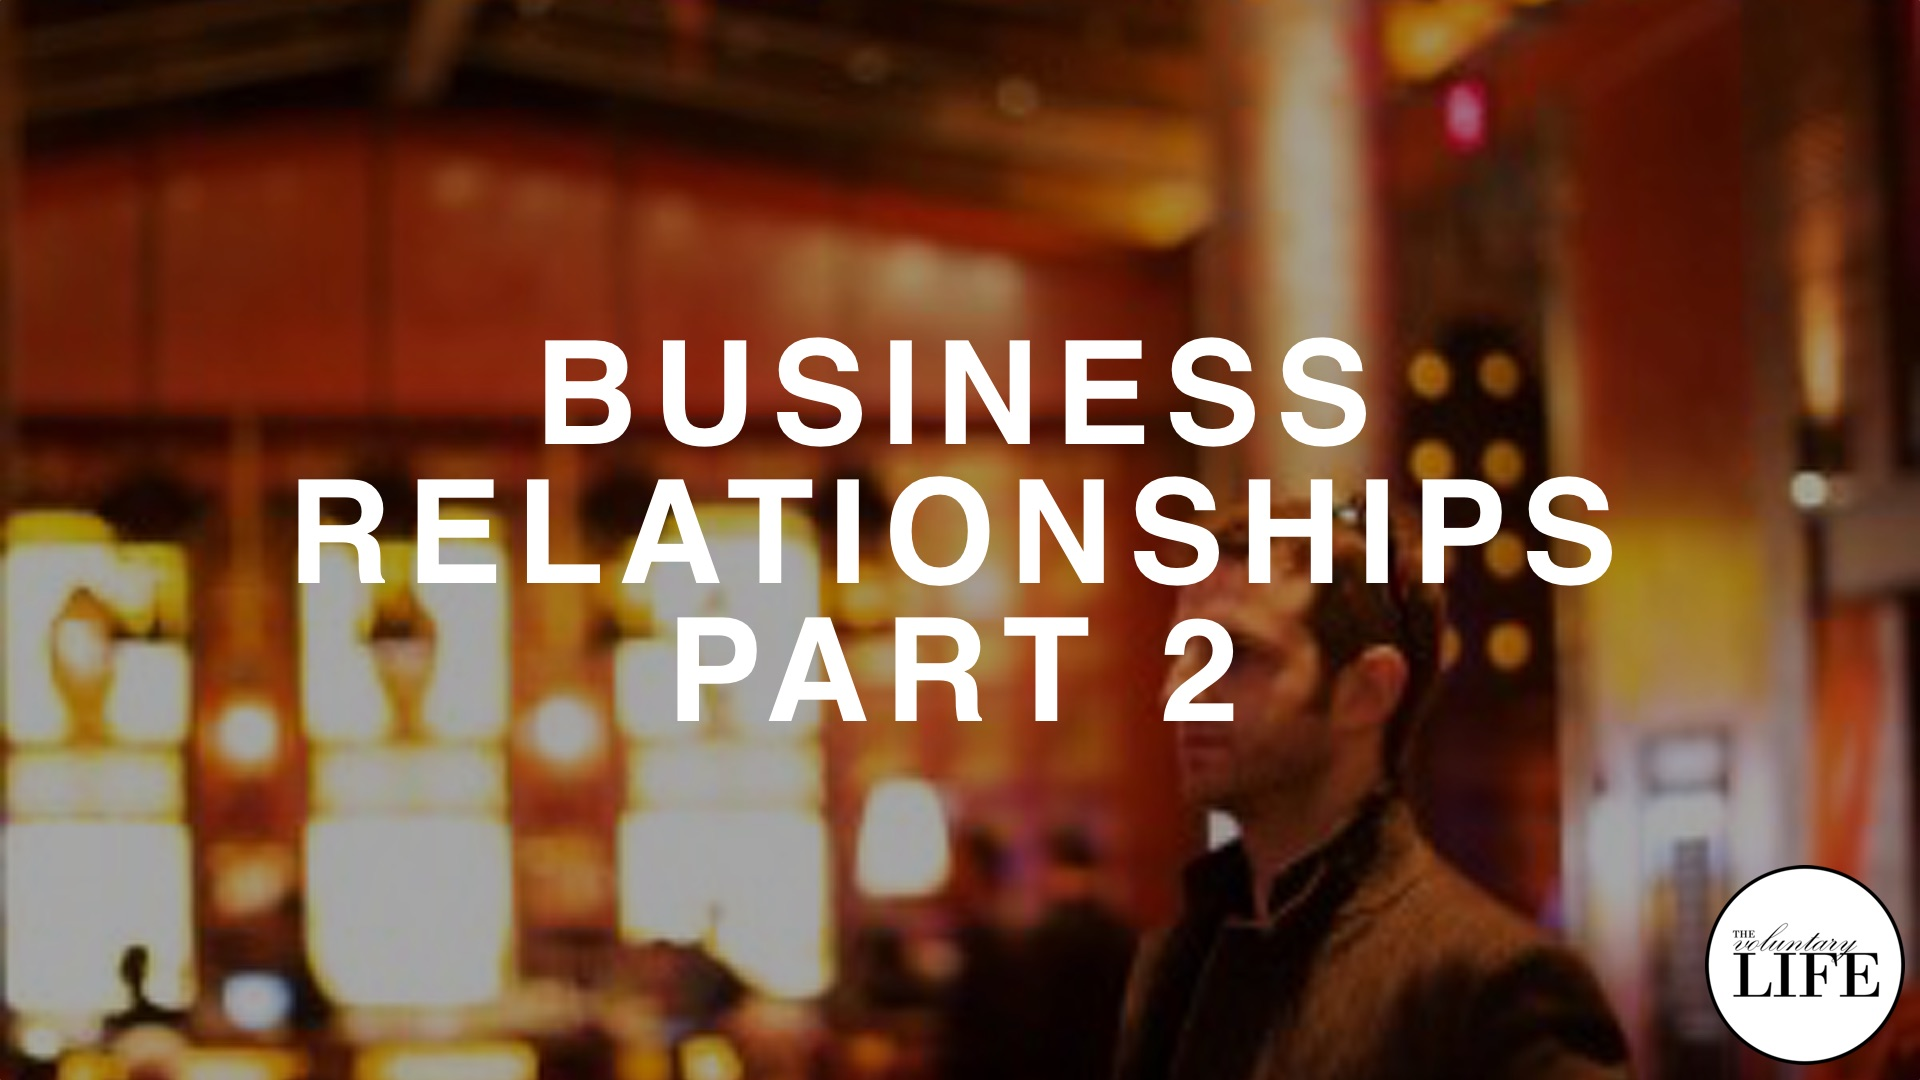 95 Judd Weiss on Business Relationships Part 2